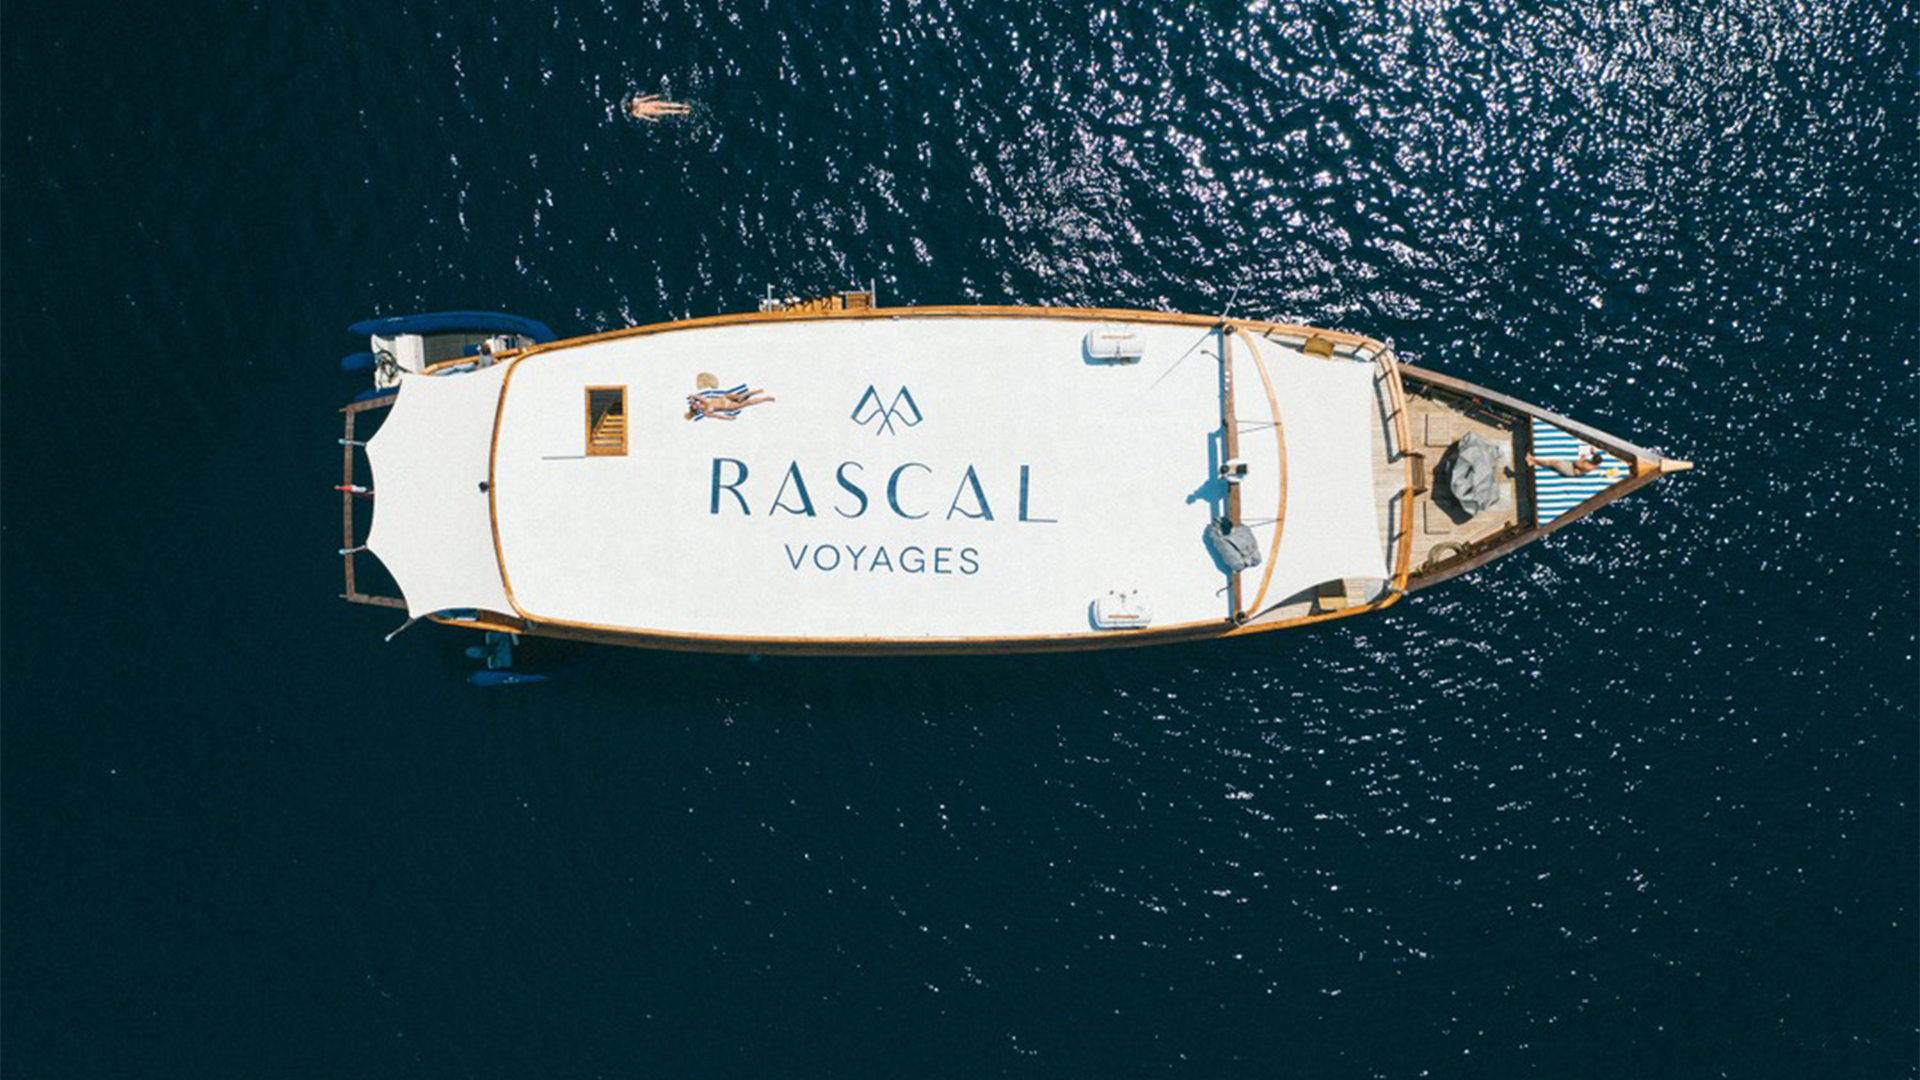 Rascal-Voyages-